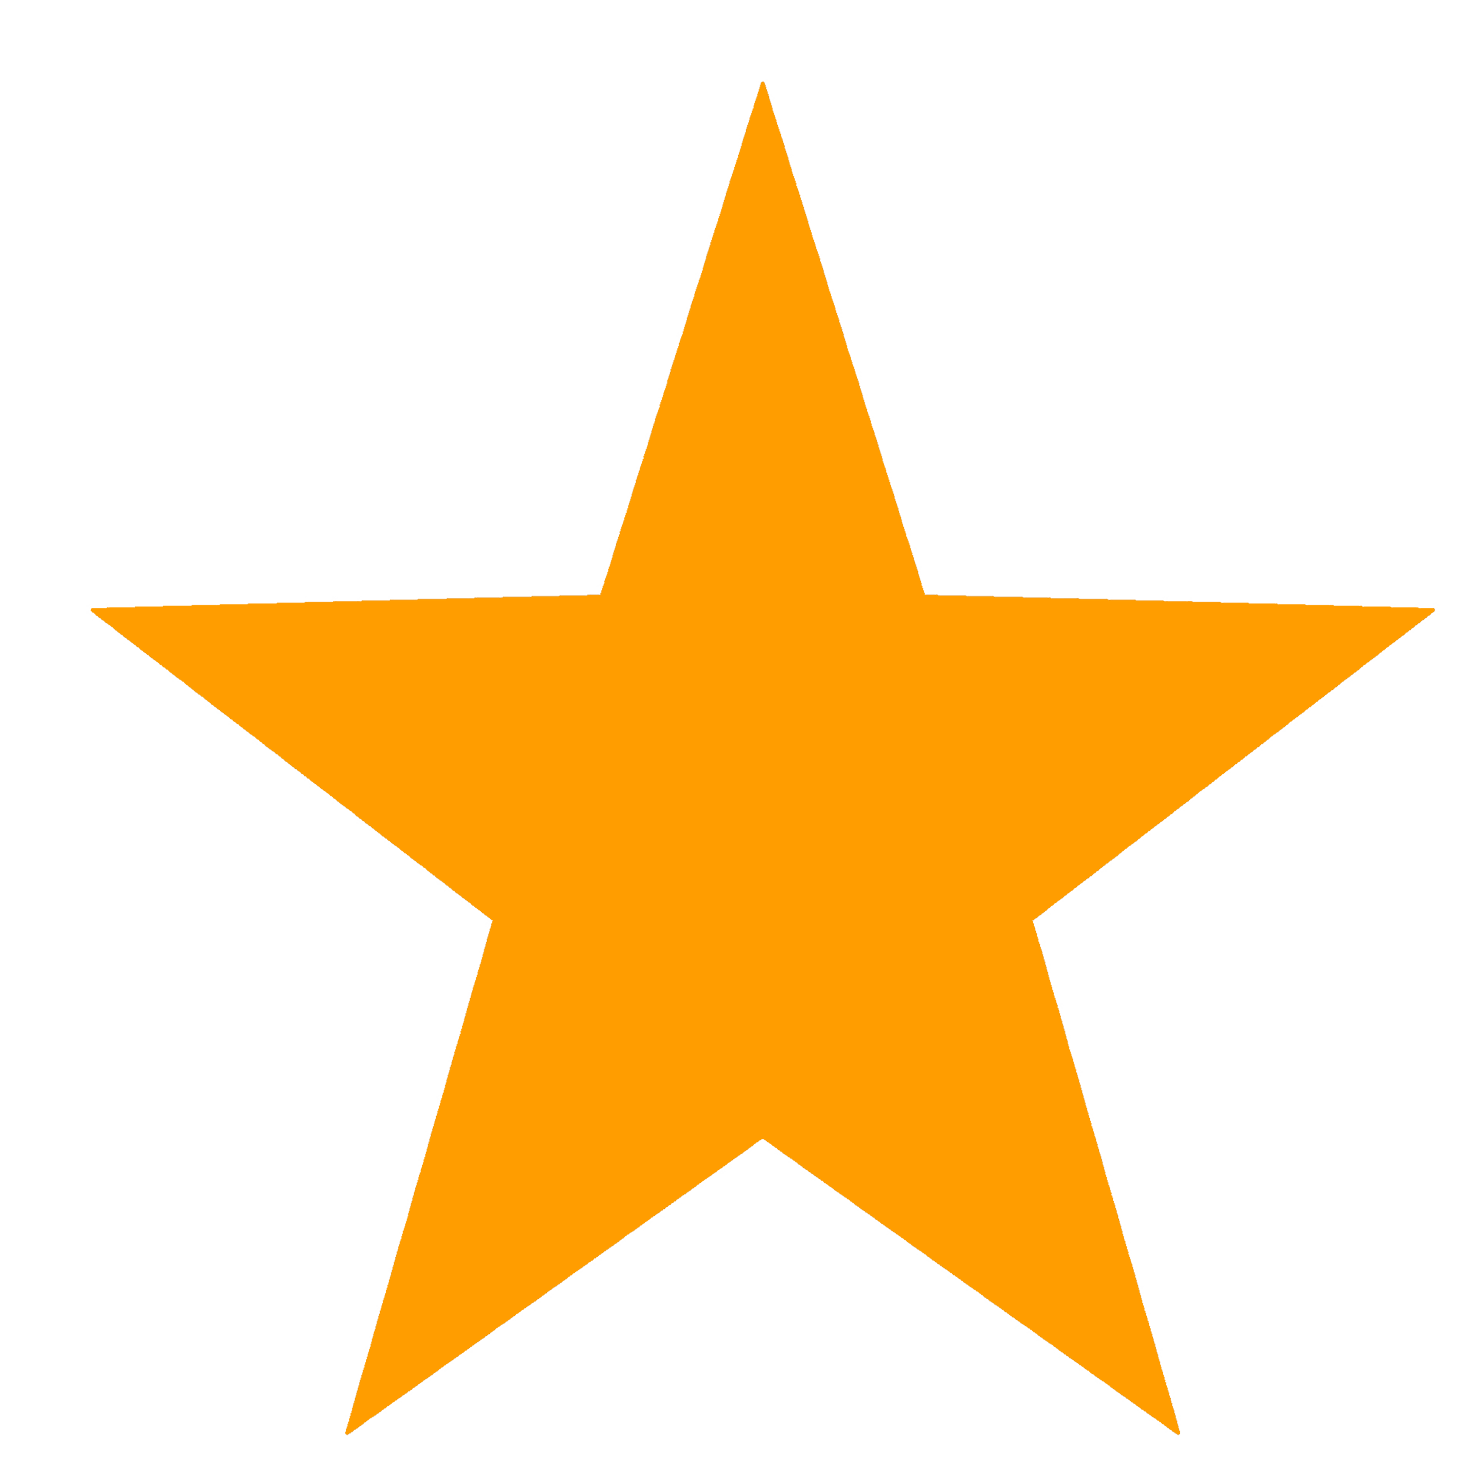 Star tips clipart png black and white Star Clipart png black and white